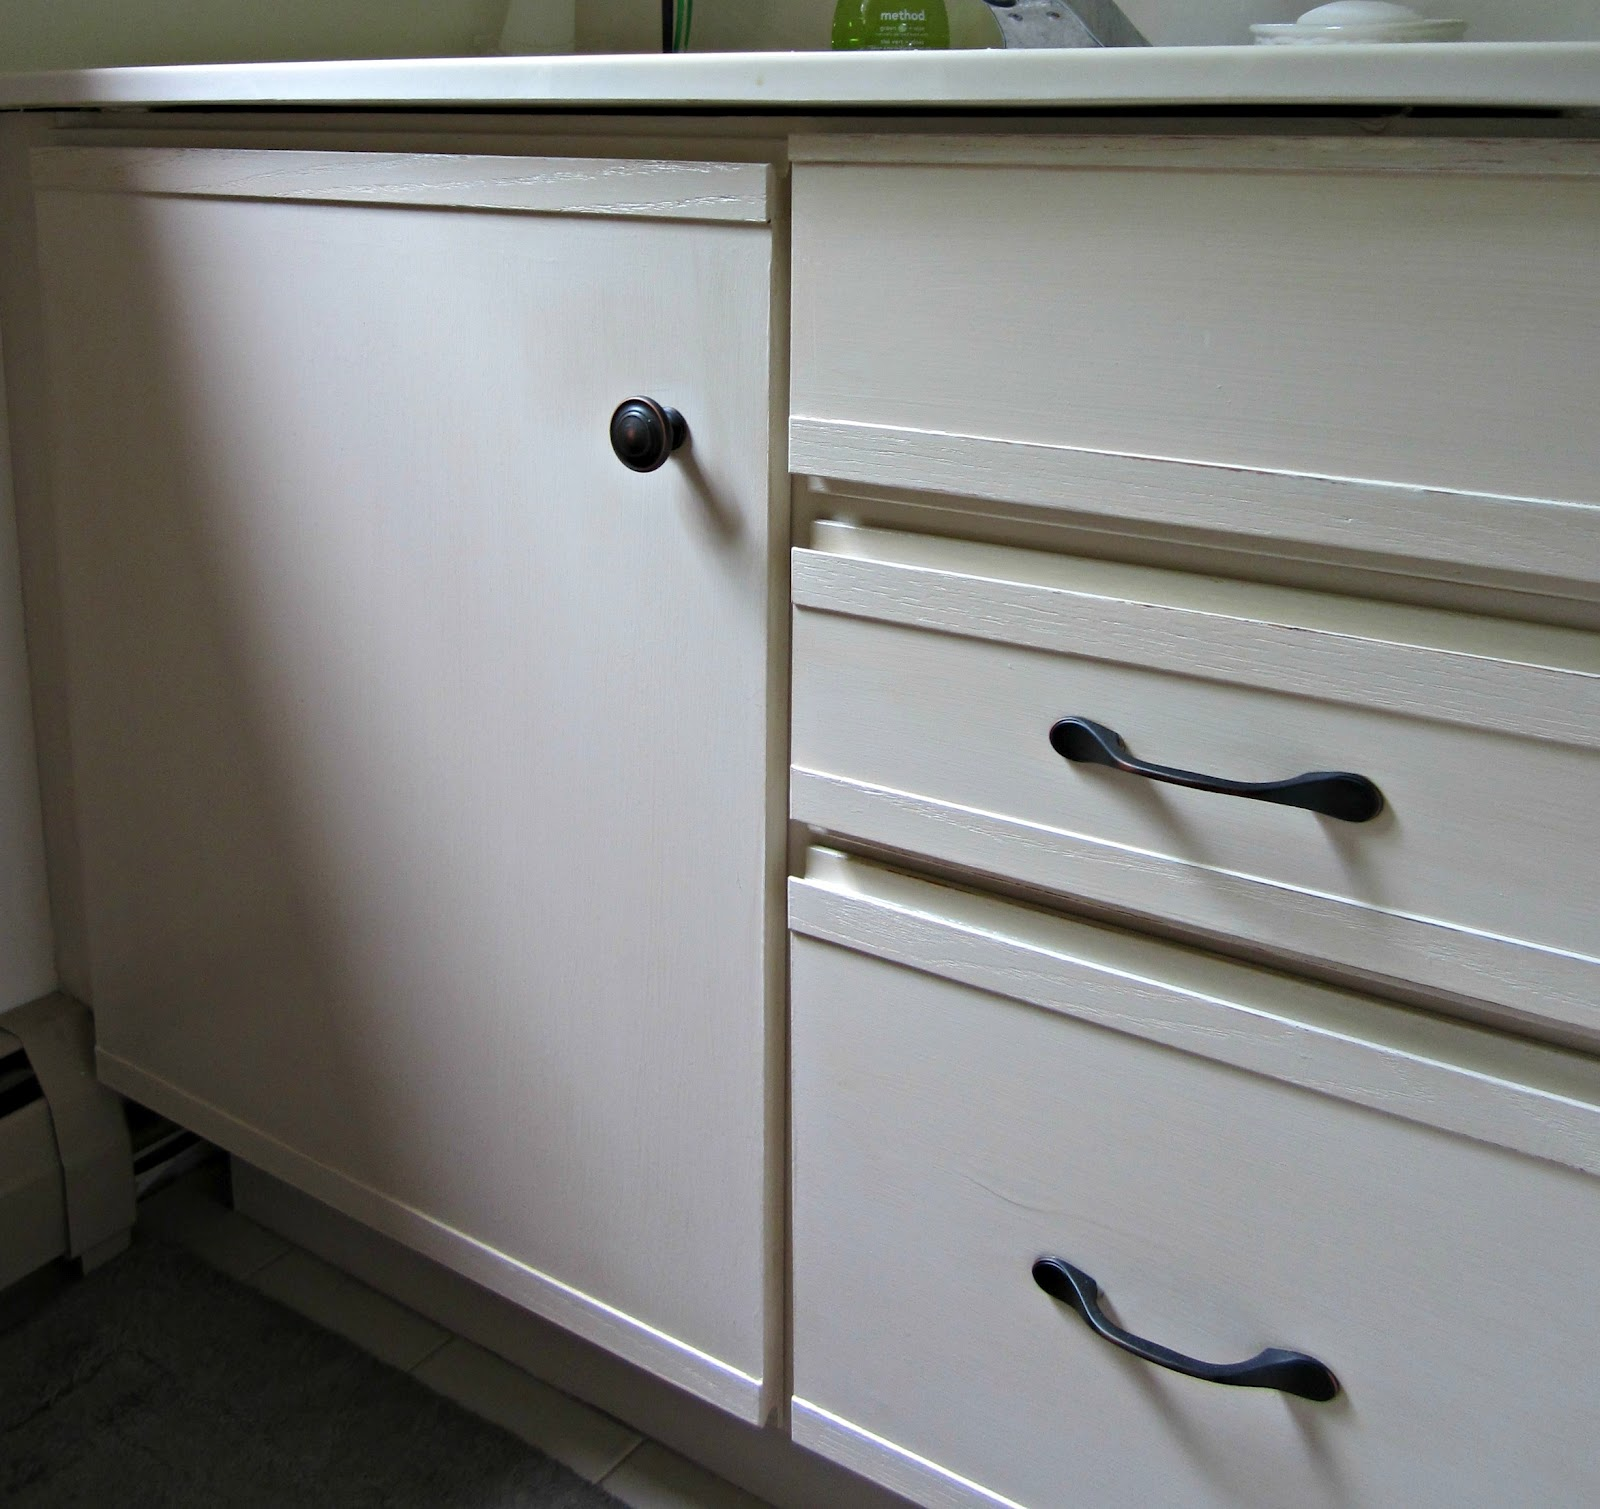 Facelift For Kitchen Cabinets: We're Going To Be Switching Out The Faucet, And Framing